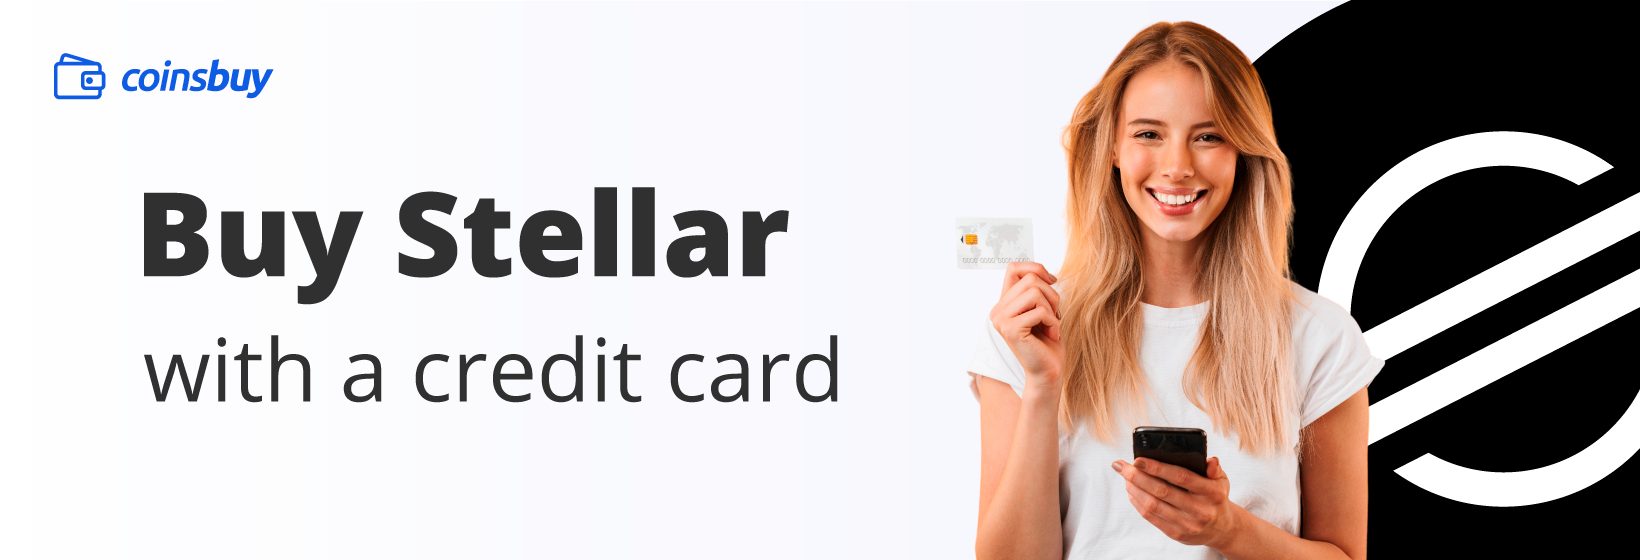 Buy Stellar with credit card